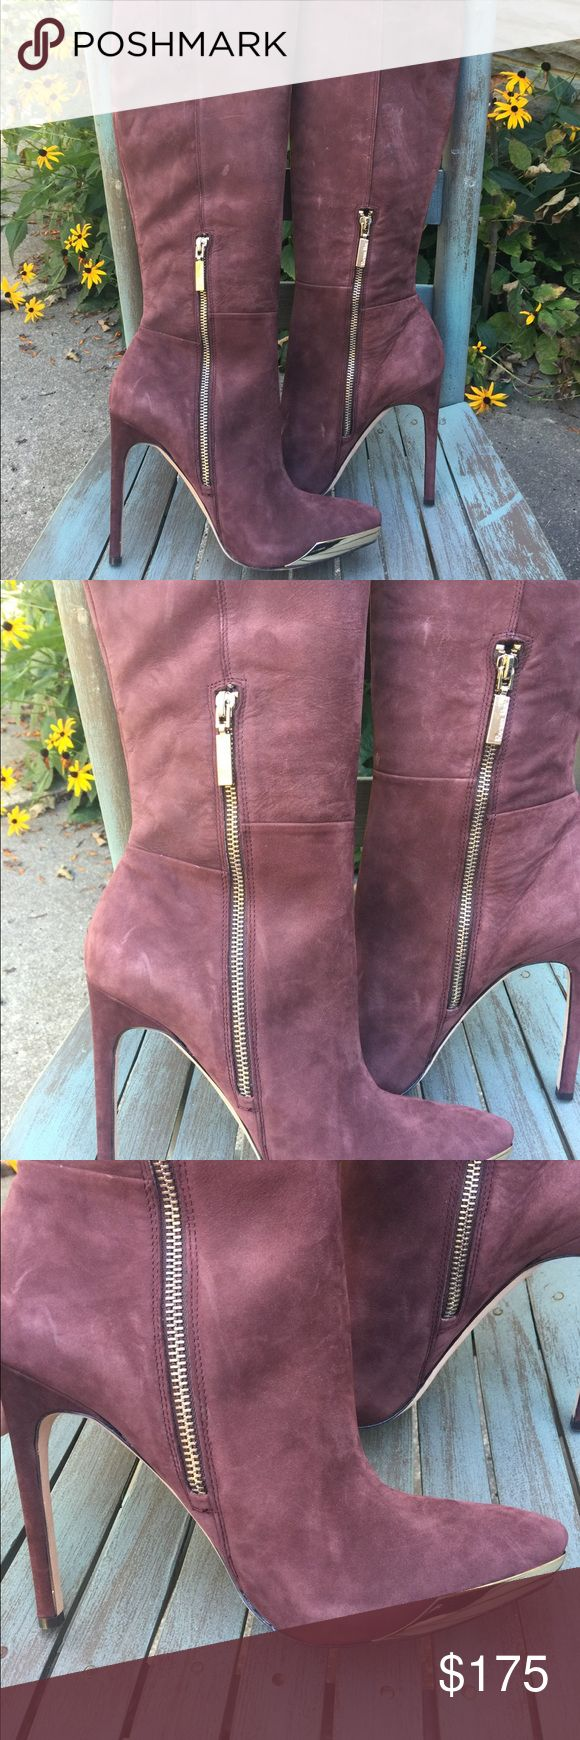 Women's Rachel Roy Eggplant Purple Tall Boots 8.5M Women's Rachel Roy Eggplant Purple Leather Tall Heeled Boots Size 8.5M. These are brand new, needs tags! Super sexy! Amazing fall colors Rachel Roy Shoes Heeled Boots